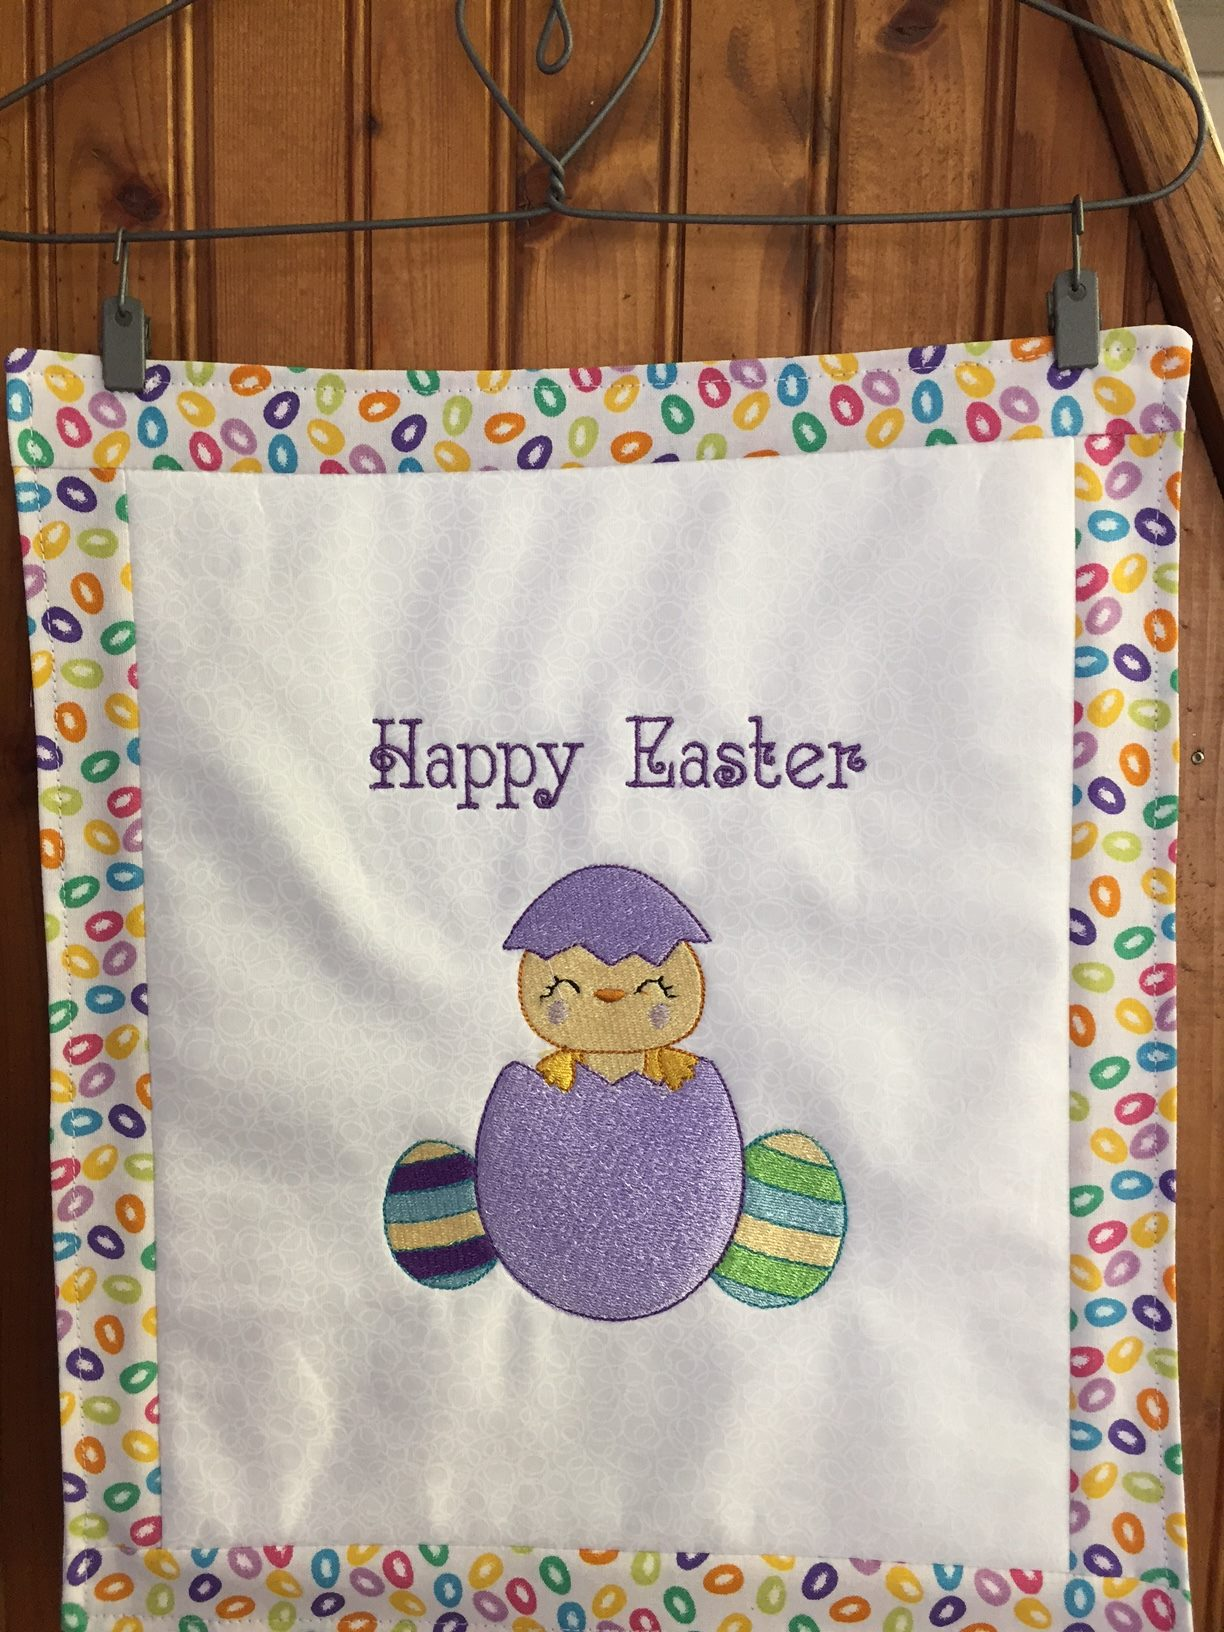 Deborah Easter Sentiments Too Wall Hanging May 17